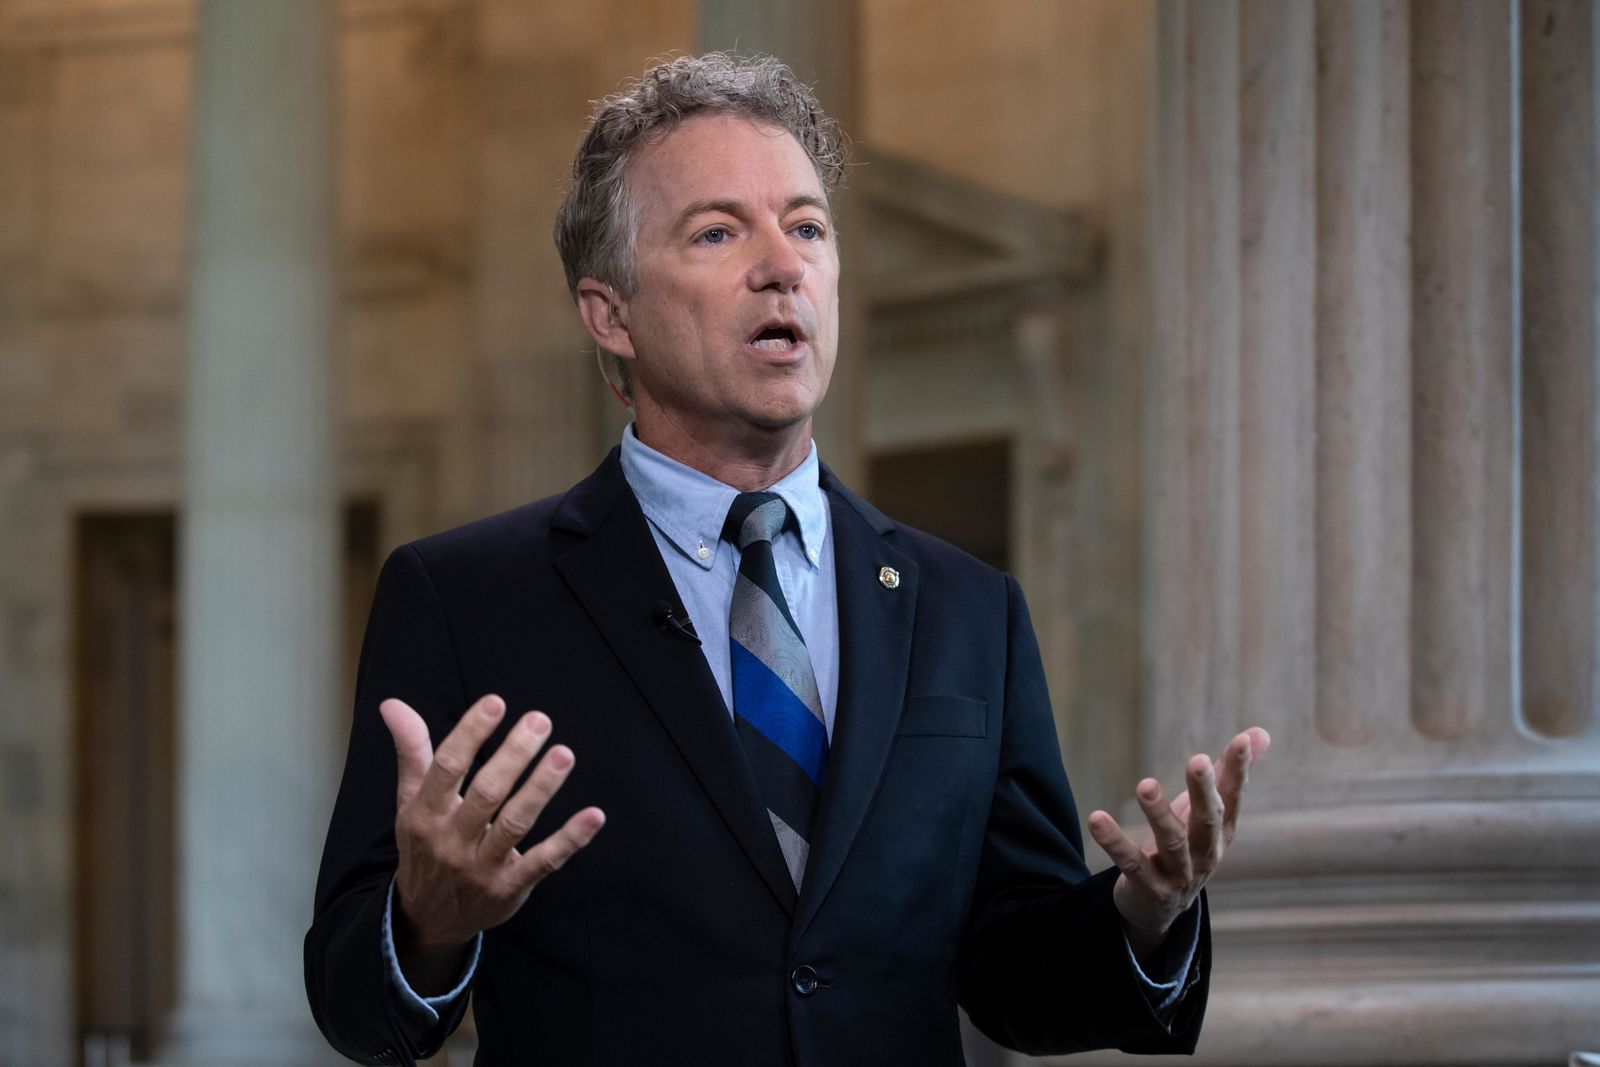 "FILE - In this July 17, 2018, file photo, Sen. Rand Paul, R-Ky., speaks during a television interview as he defends President Donald Trump and his Helsinki news conference with Russian President Vladimir Putin on Capitol Hill in Washington. Two years into President Donald Trump's administration, the president's allies in Congress are quietly trying to influence and even reshape his ""America First"" foreign policy agenda. (AP Photo/J. Scott Applewhite, File)"